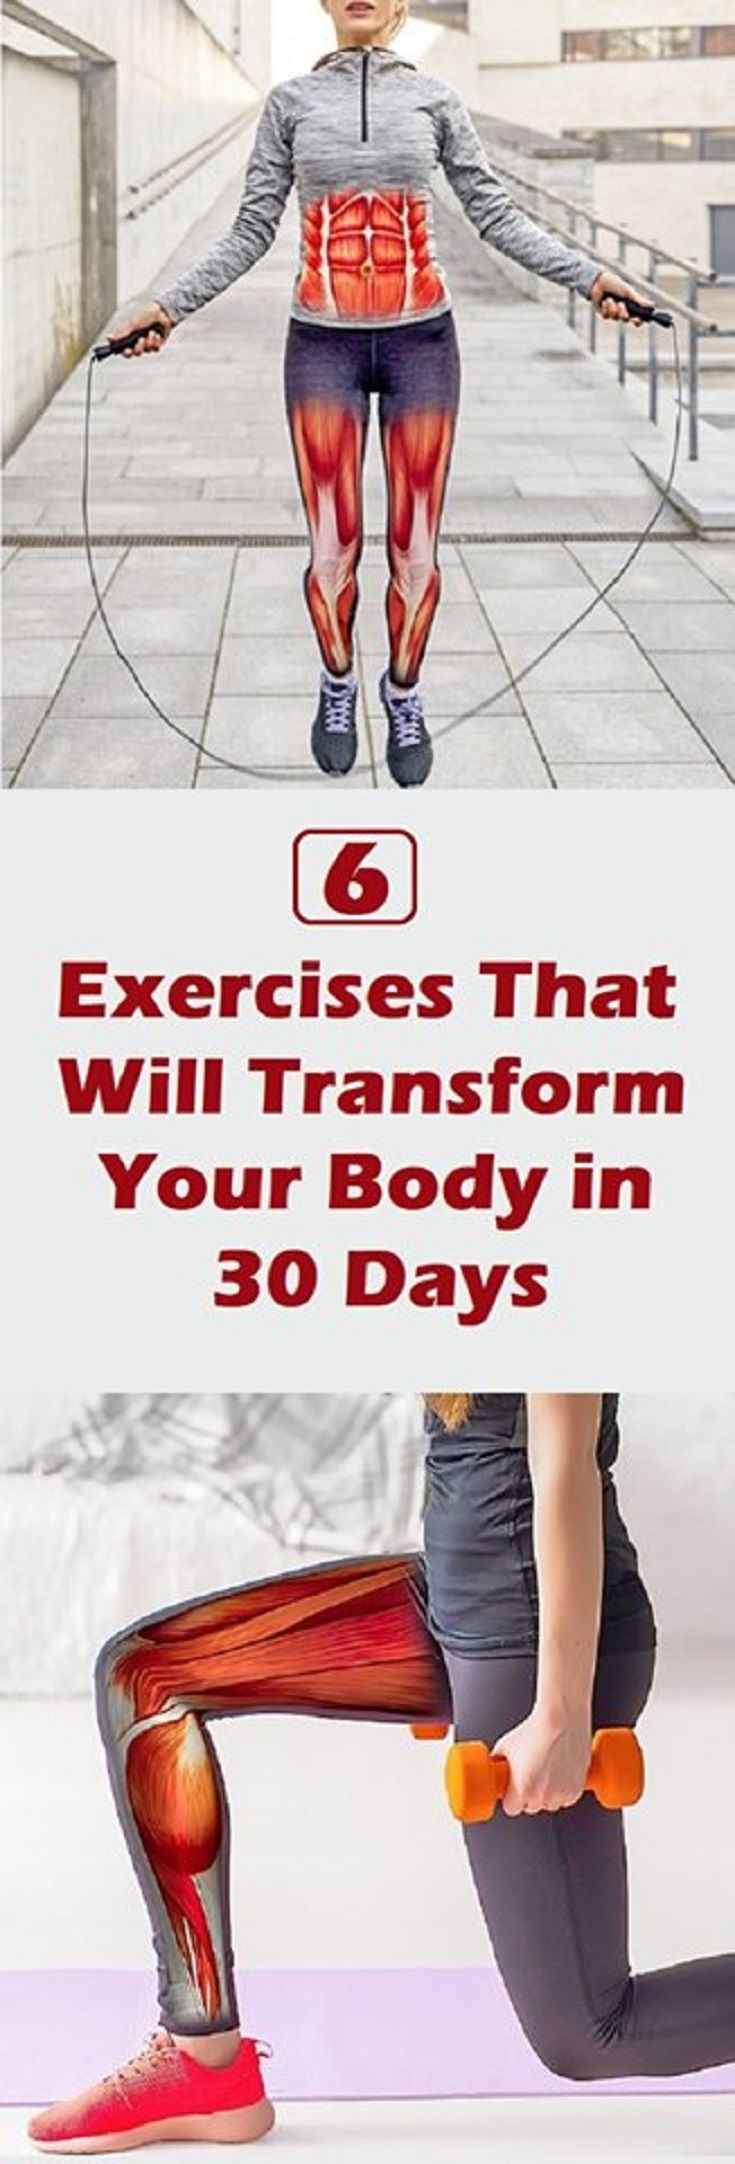 6 Exercises That Will Transform Your Body in 30 Days – Health Advice and Beauty Tips